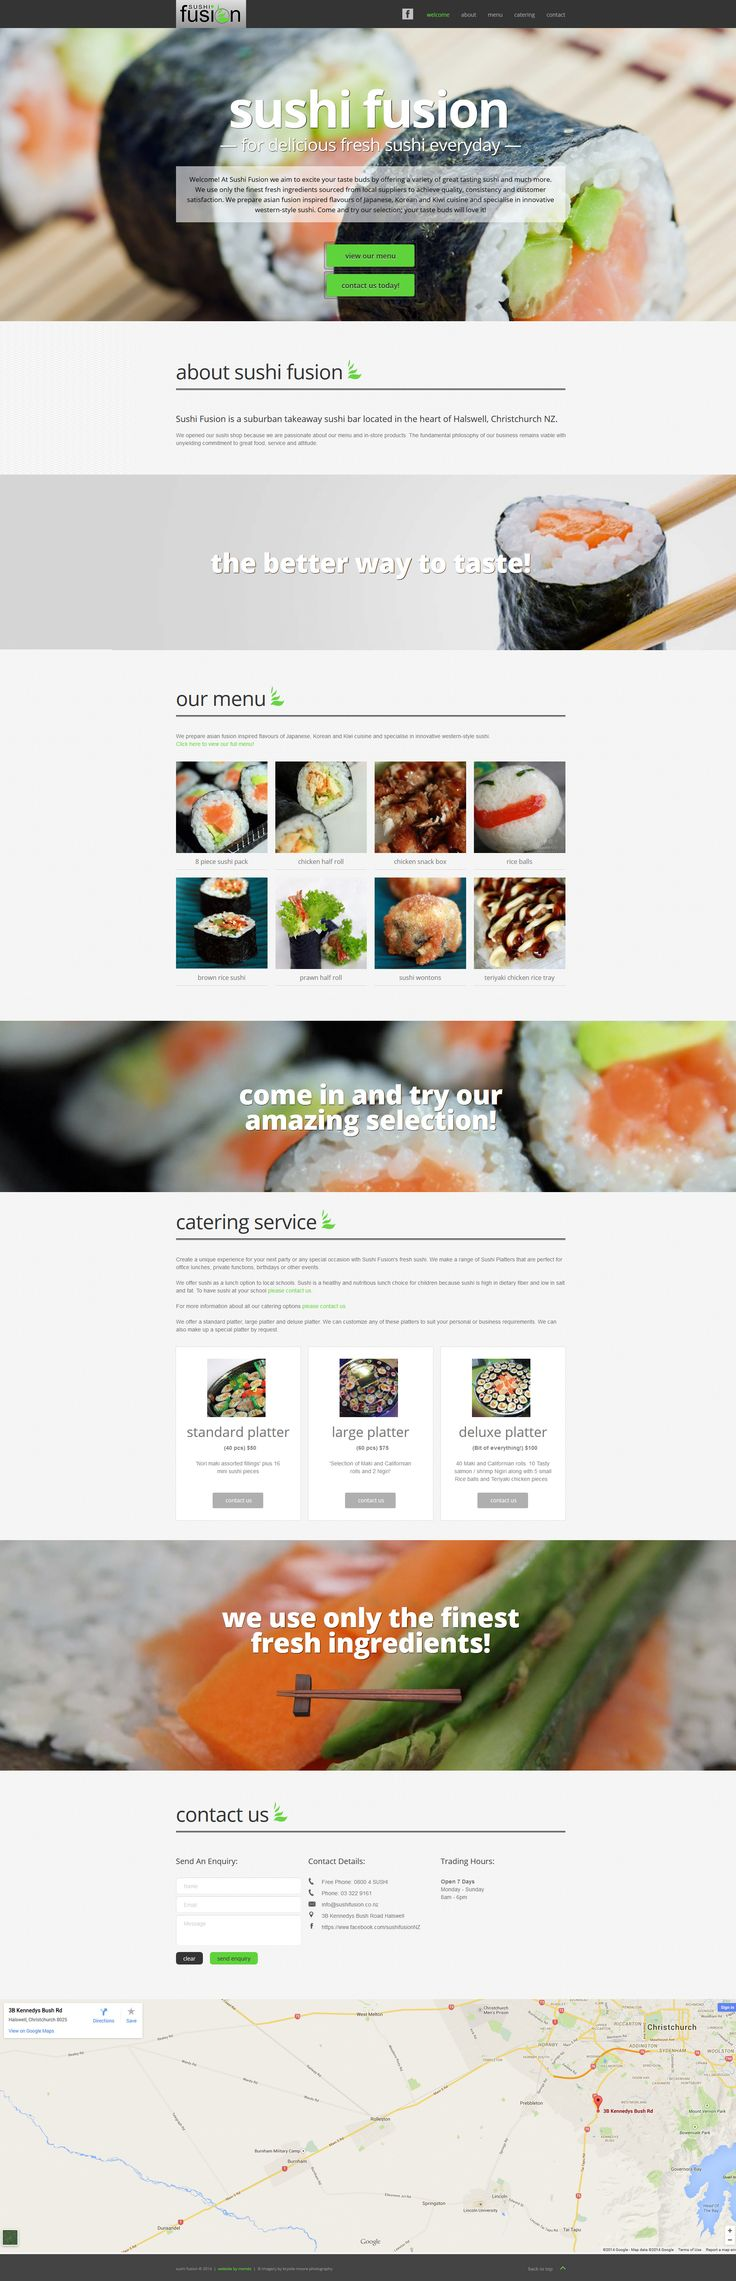 Sushi Fusion one page parallax scrolling website design and development